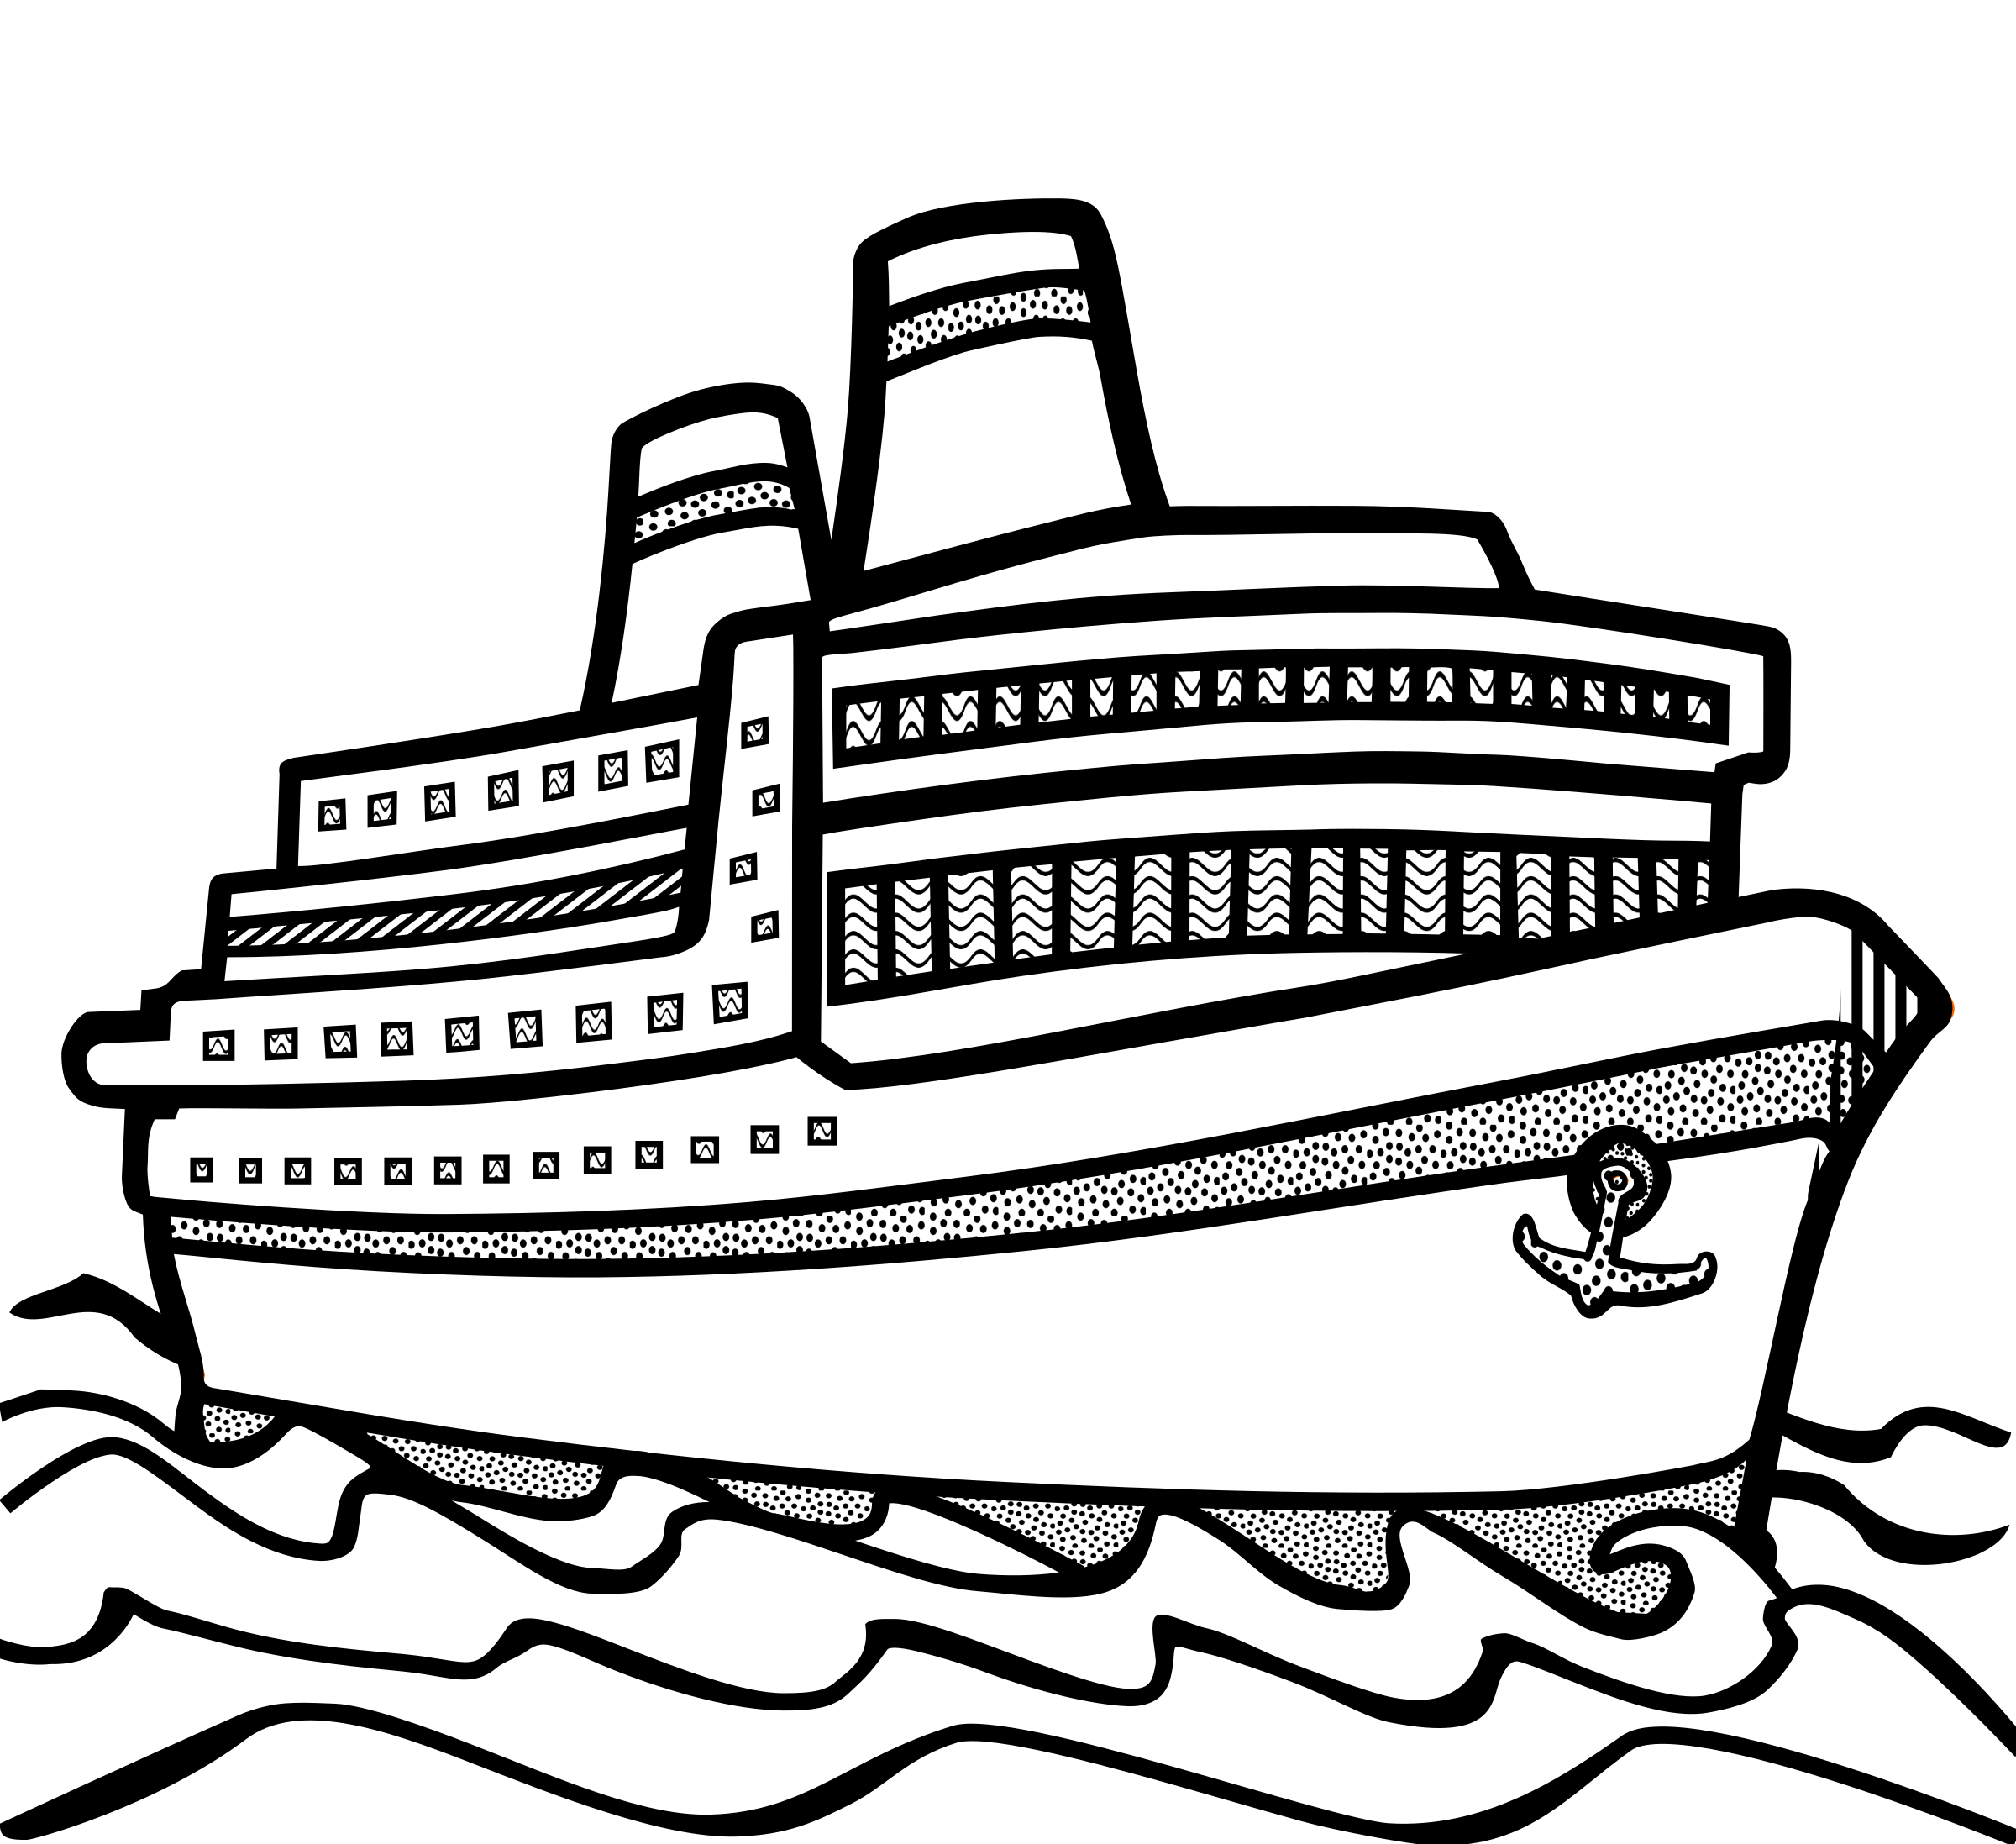 Ship clipart outline. Lineart big image png